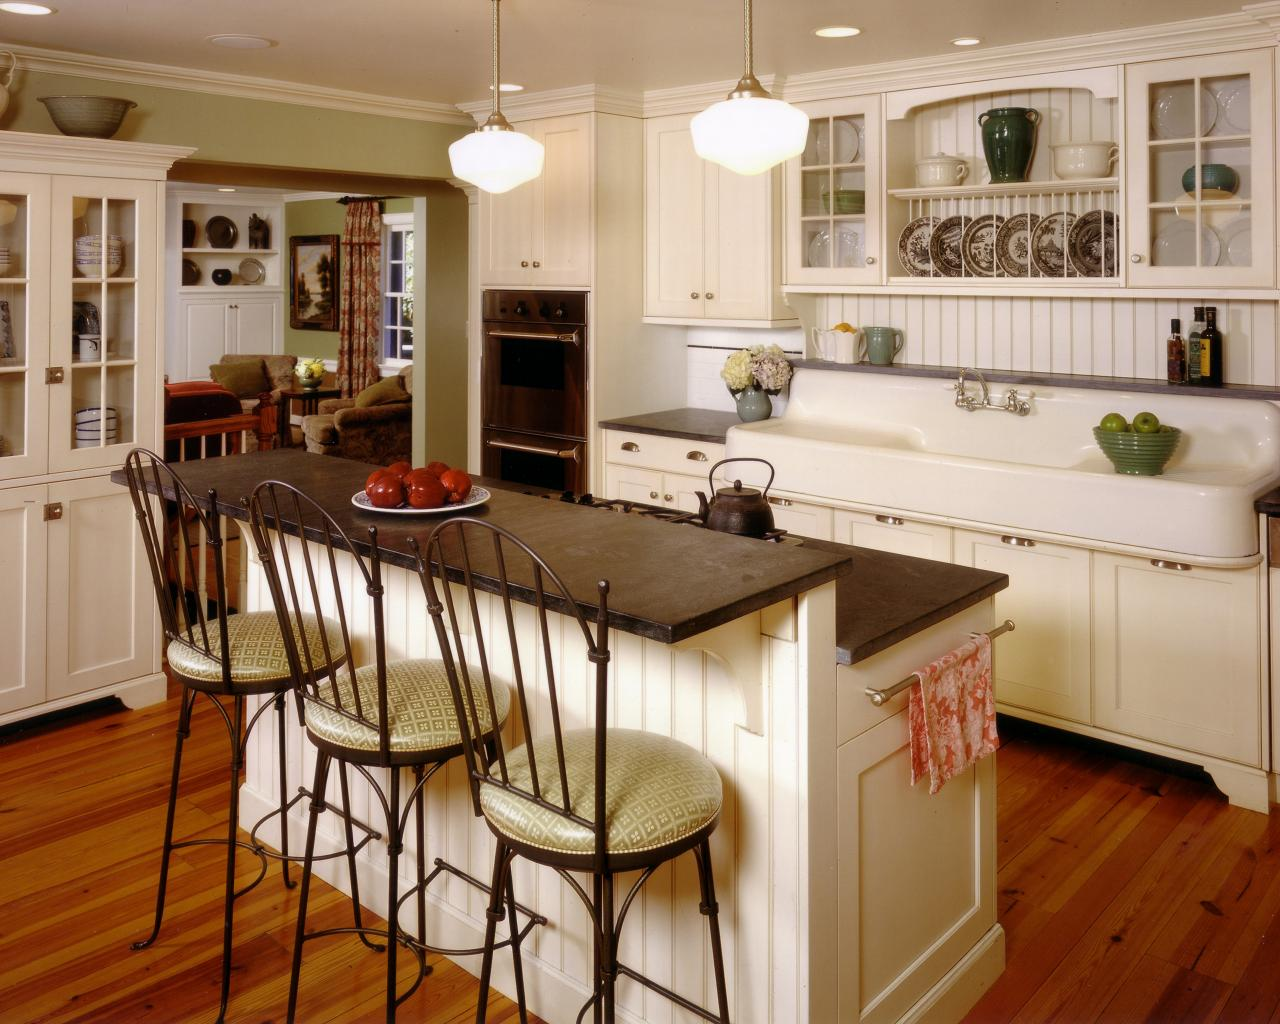 Country Kitchen Design Pictures Ideas amp Tips From HGTV